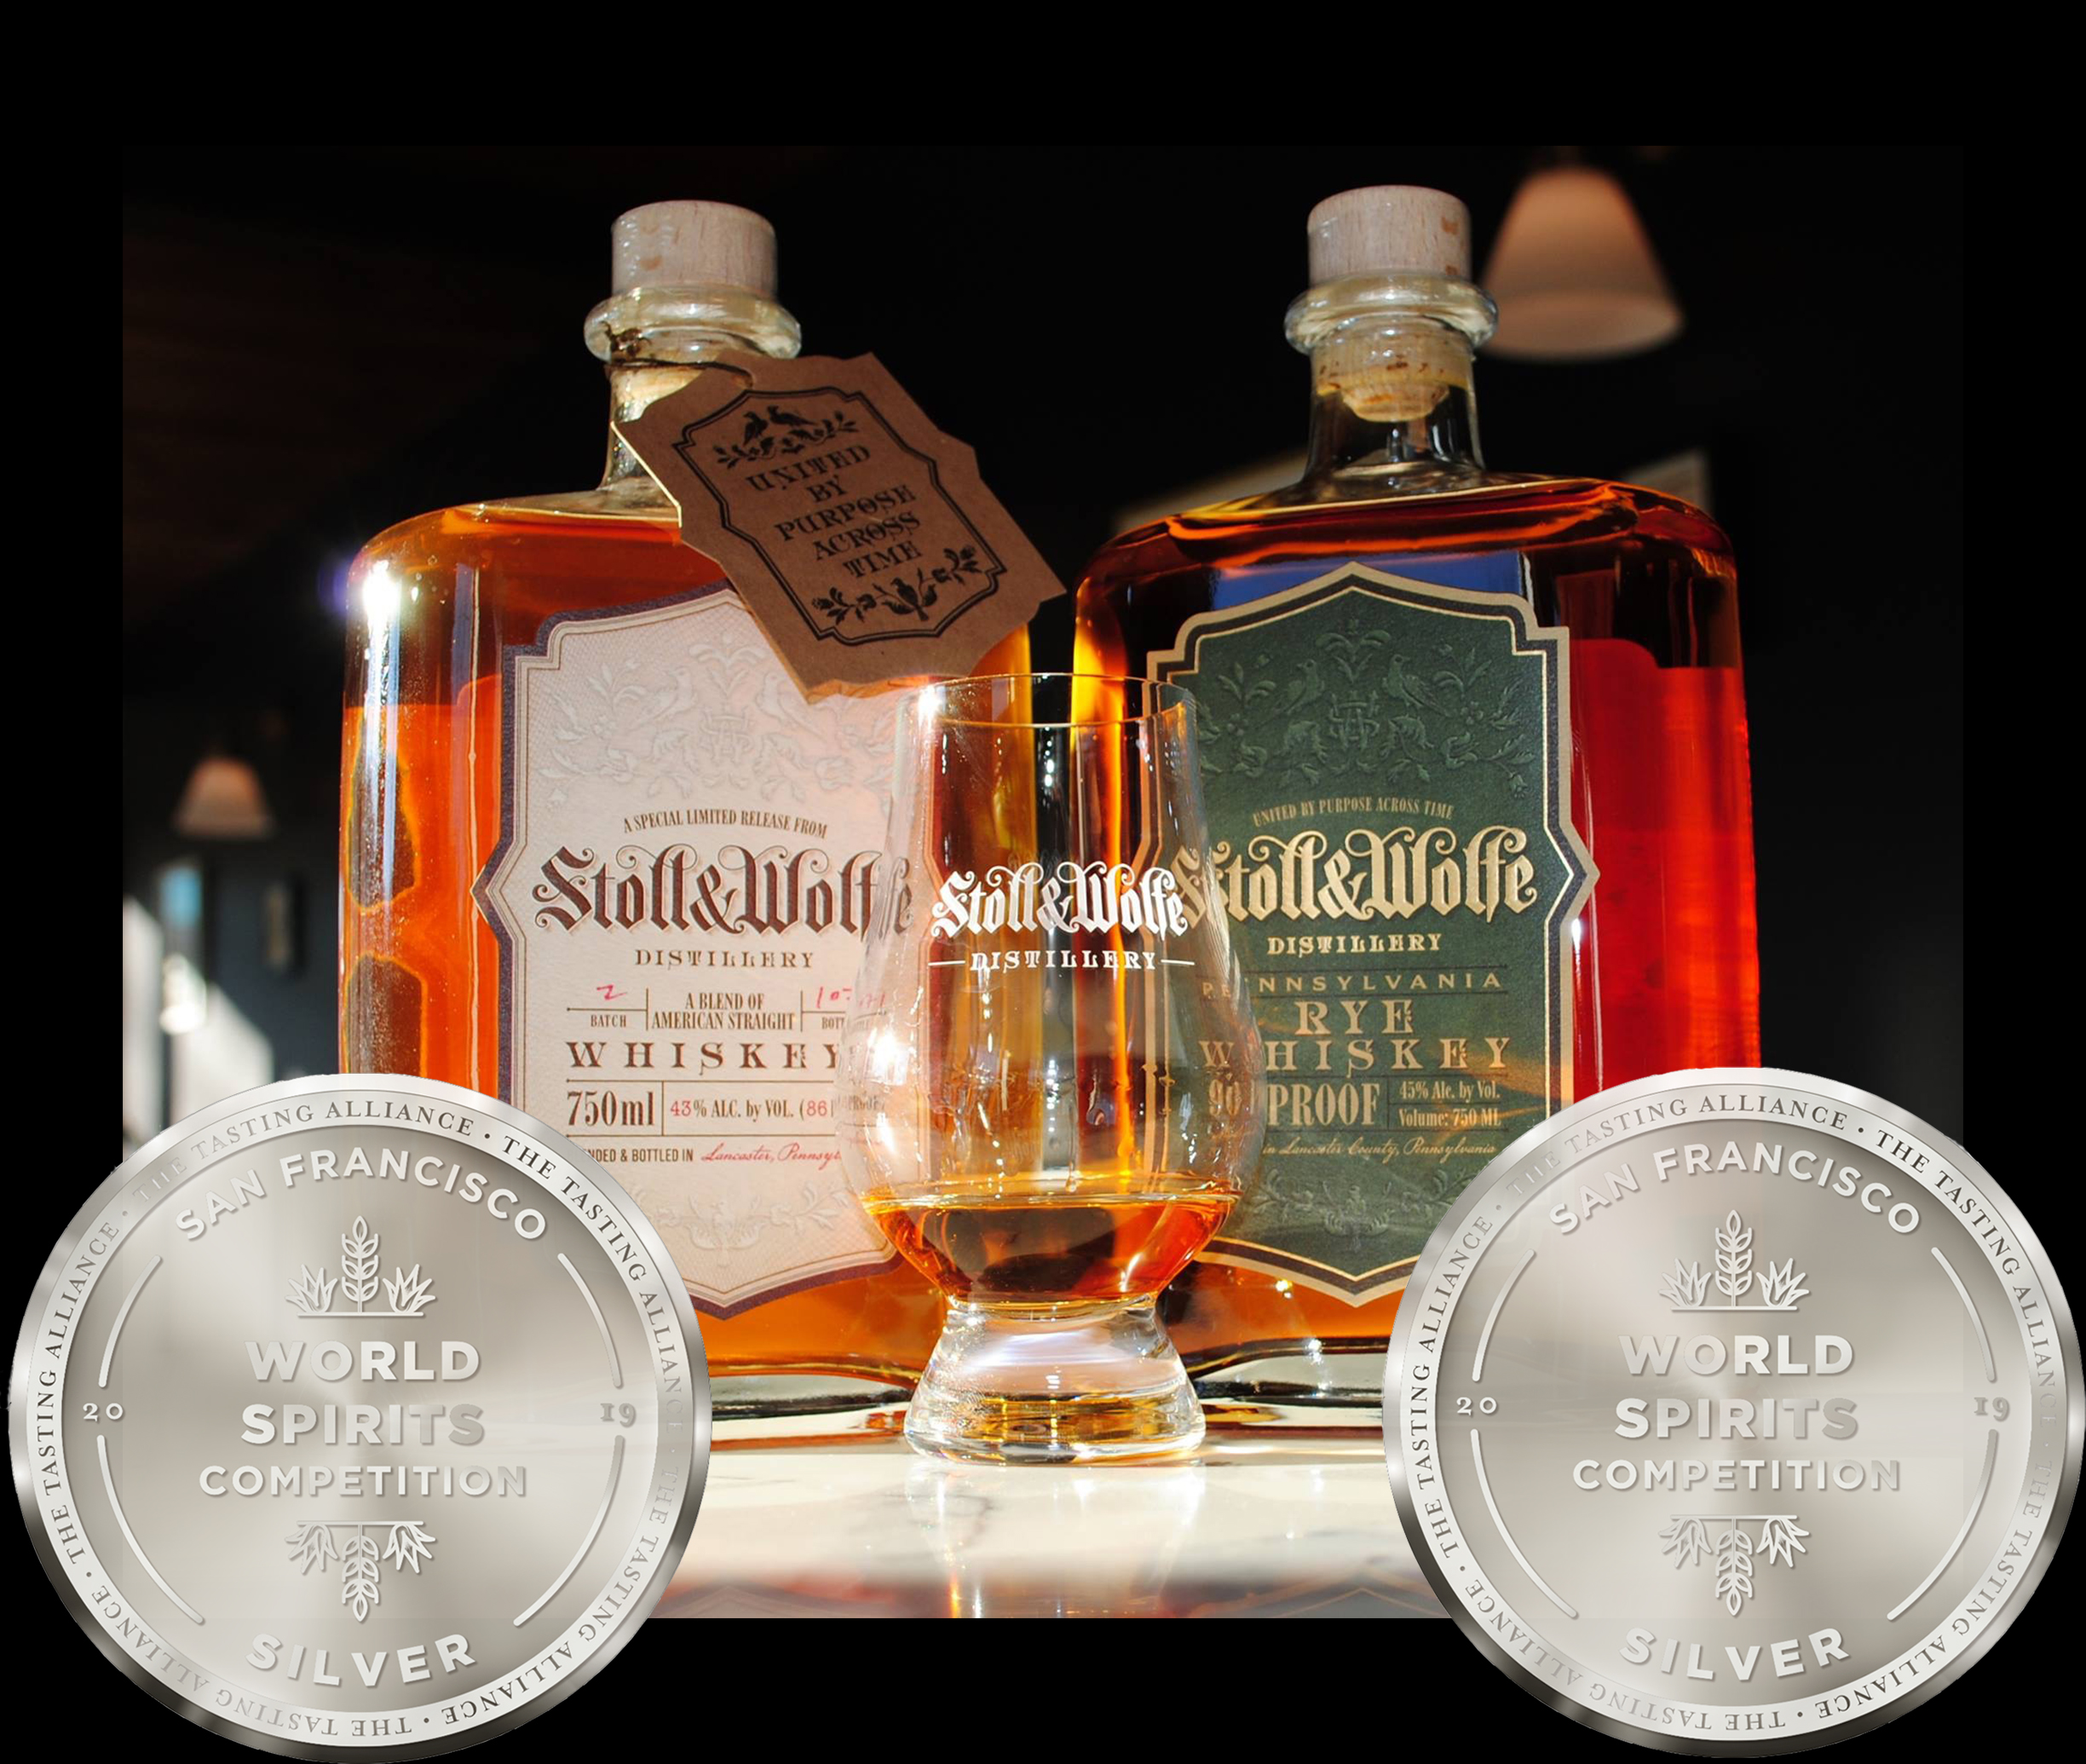 Stoll and Wolfe Bourbon and Rye Blend of Whiskeys and Stoll and Wolfe Pennsylvania Rye Whiskey both Win Silver Medals at the 2019 San Francisco Spirits Competition